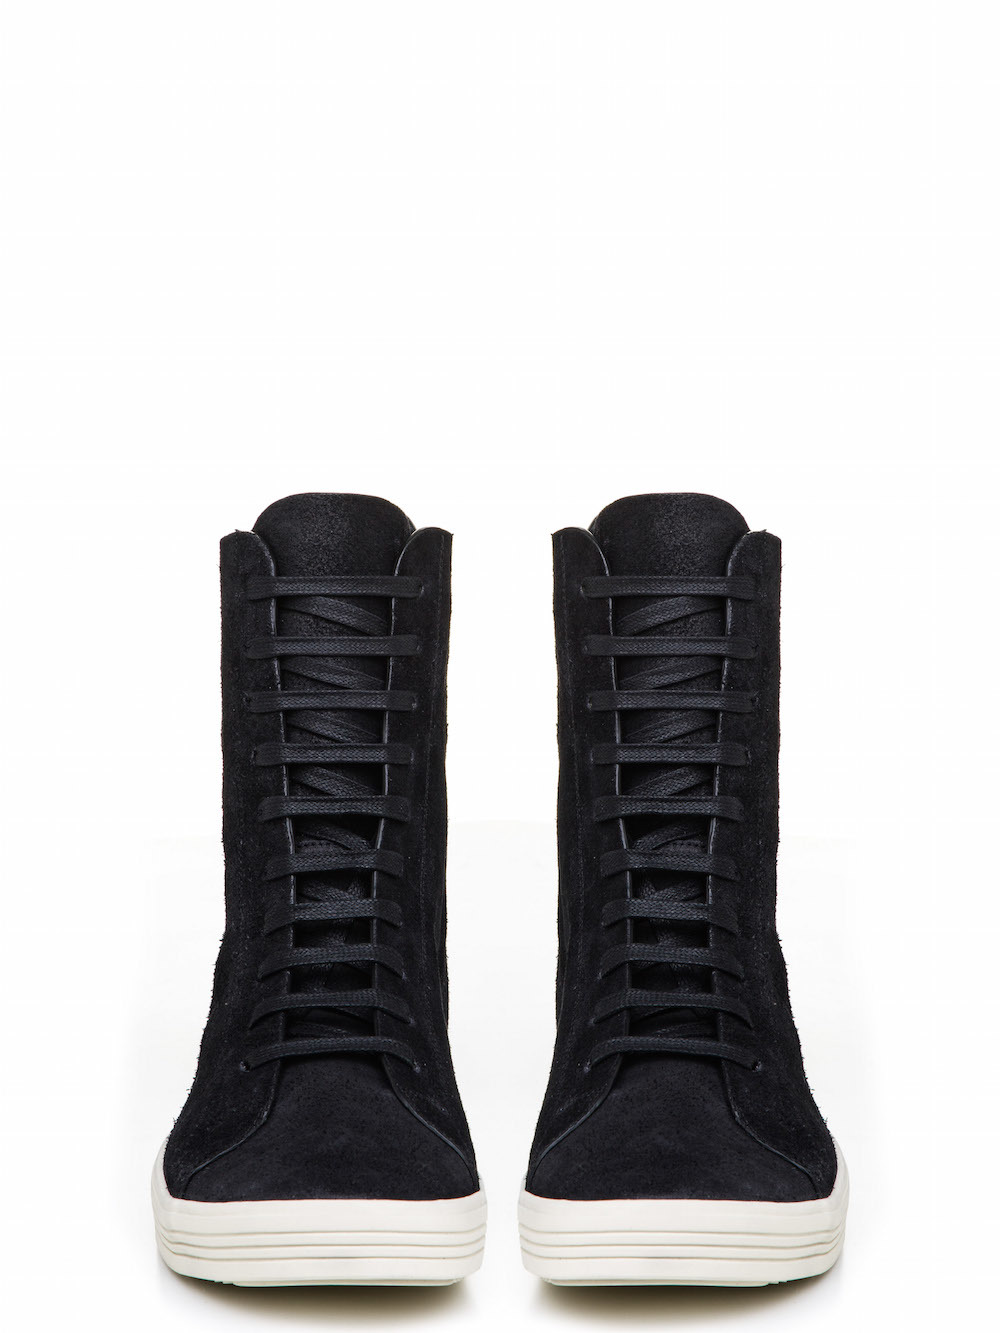 RICK OWENS  MASTODON SNEAKERS IN FADED BLACK CALF LEATHER